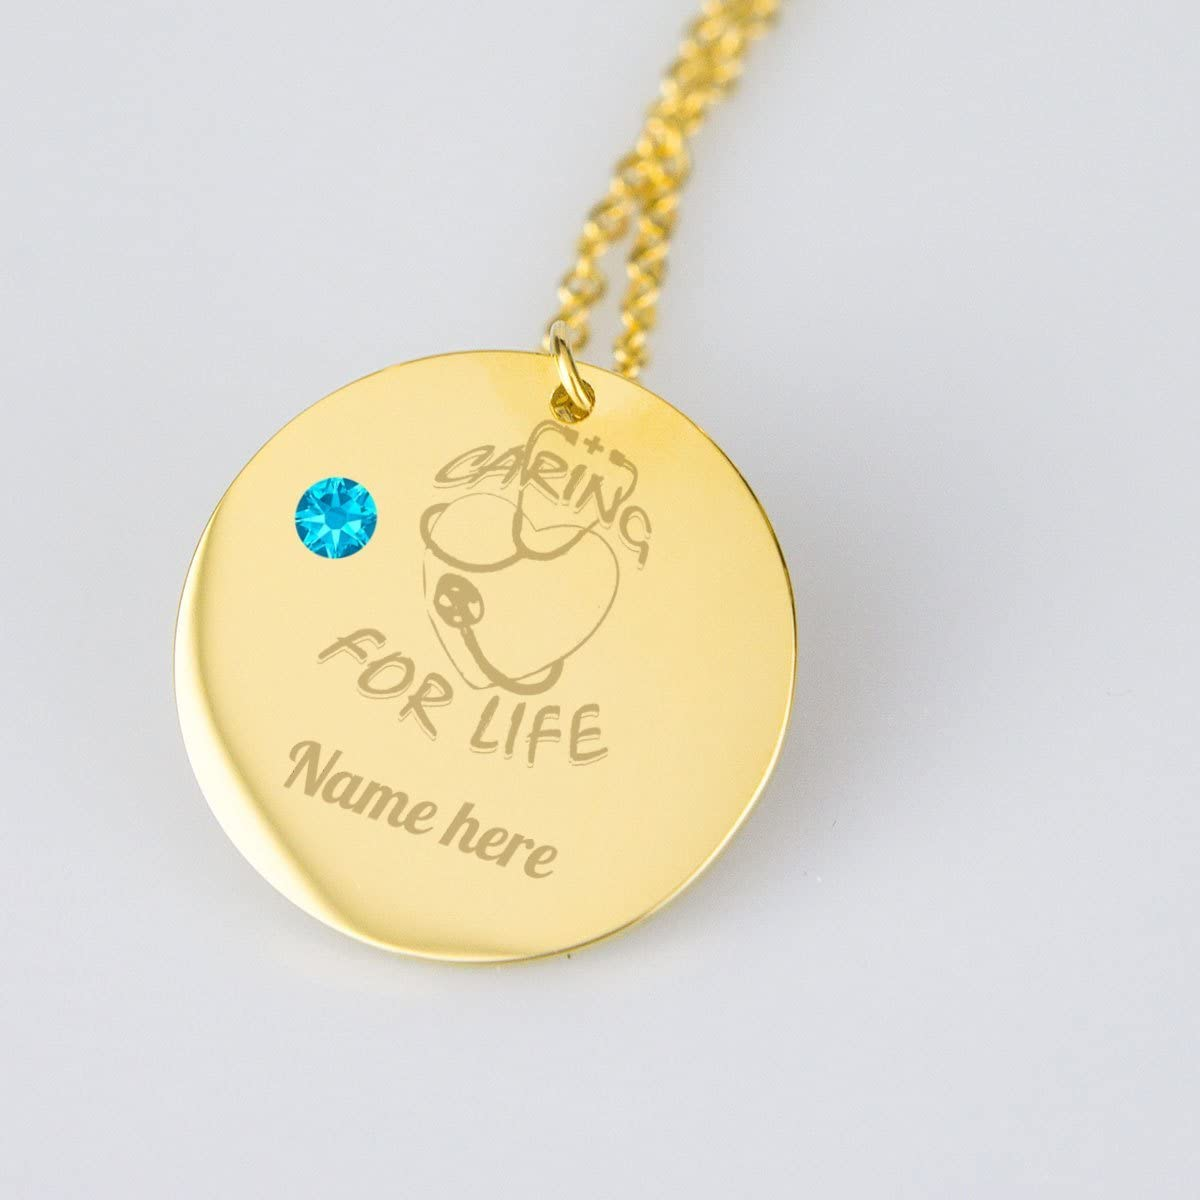 Perfectly U Designs Caring for life Nursing Personalized Necklace Medical with Birthstone